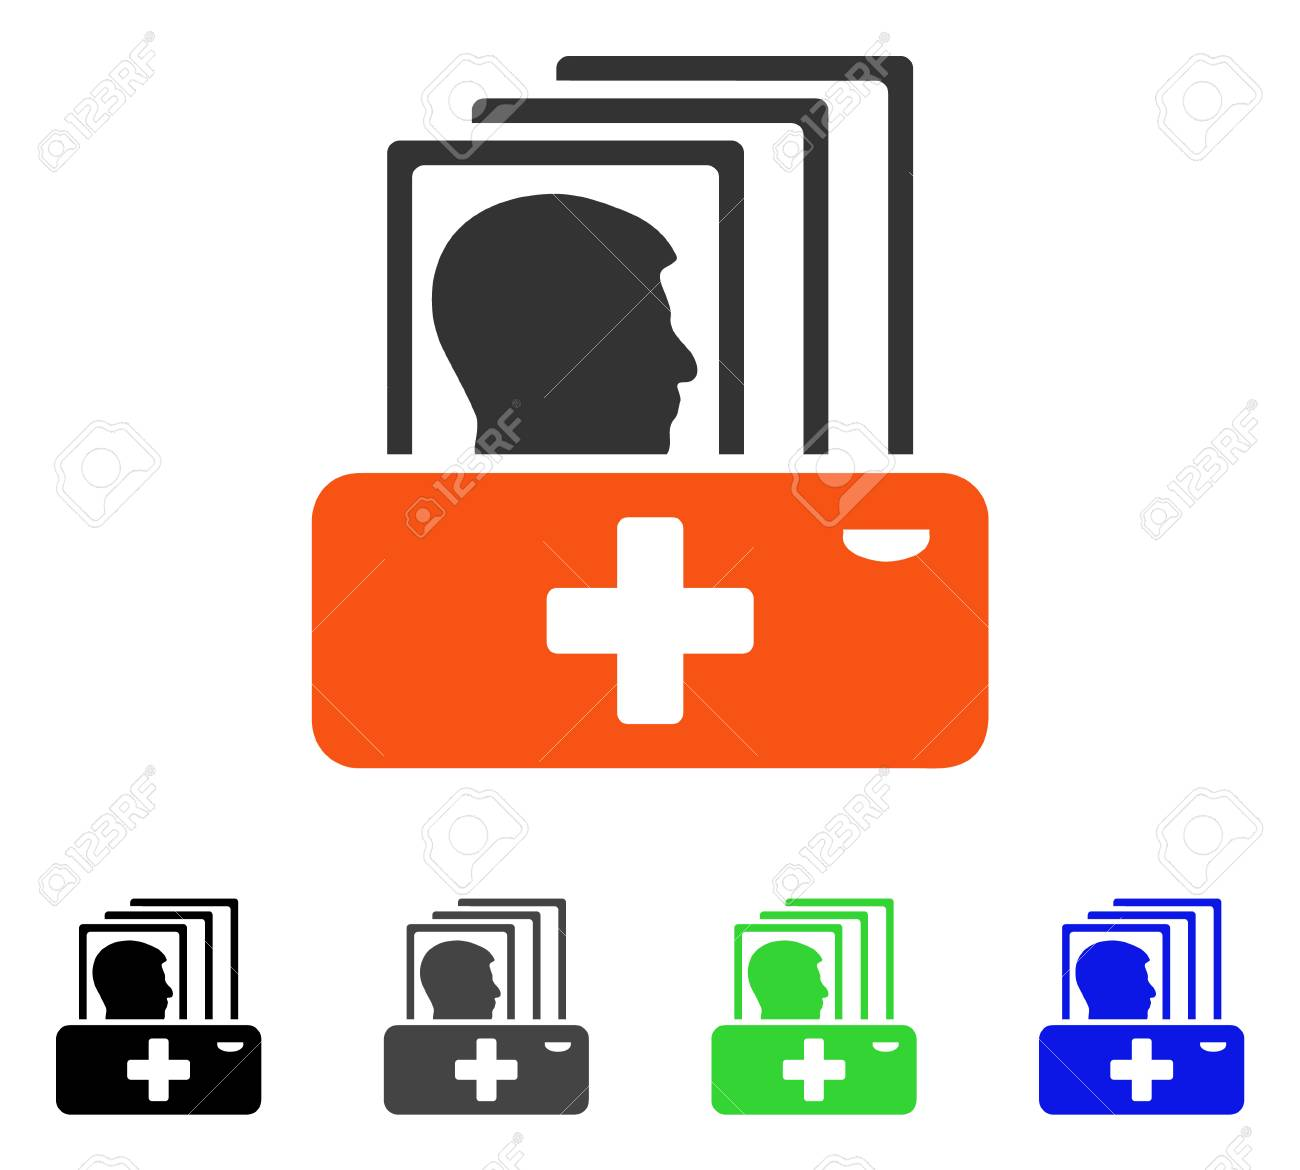 1300x1170 Patient Catalog Flat Vector Pictogram. Colored Patient Catalog